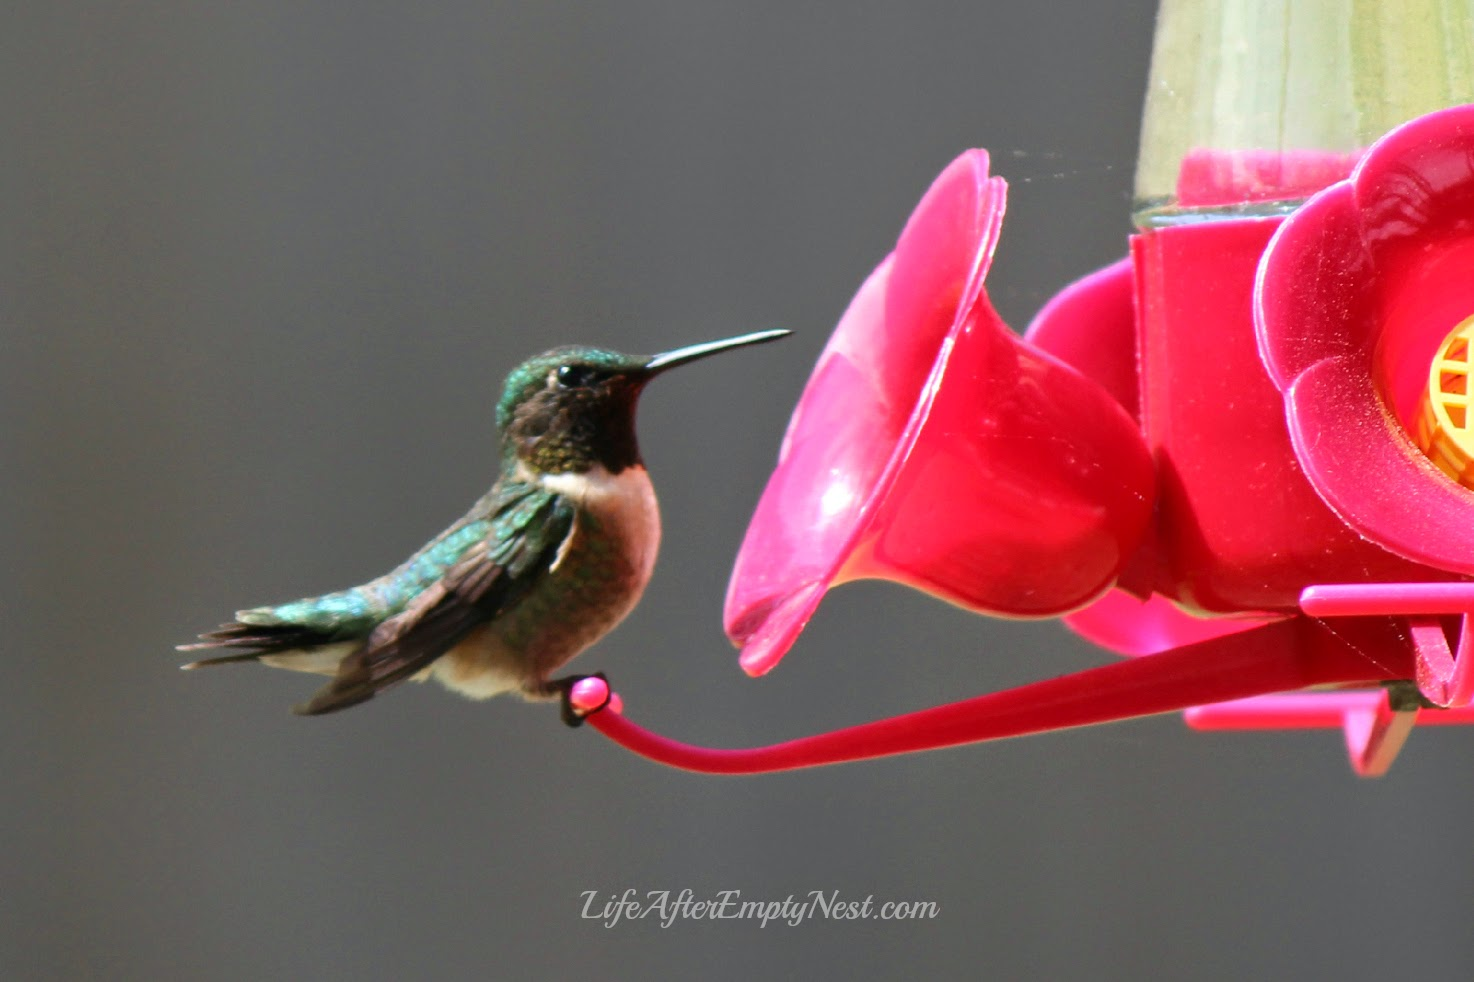 Life is all about taking the time to discover the miracles in each new day. #hummingbird